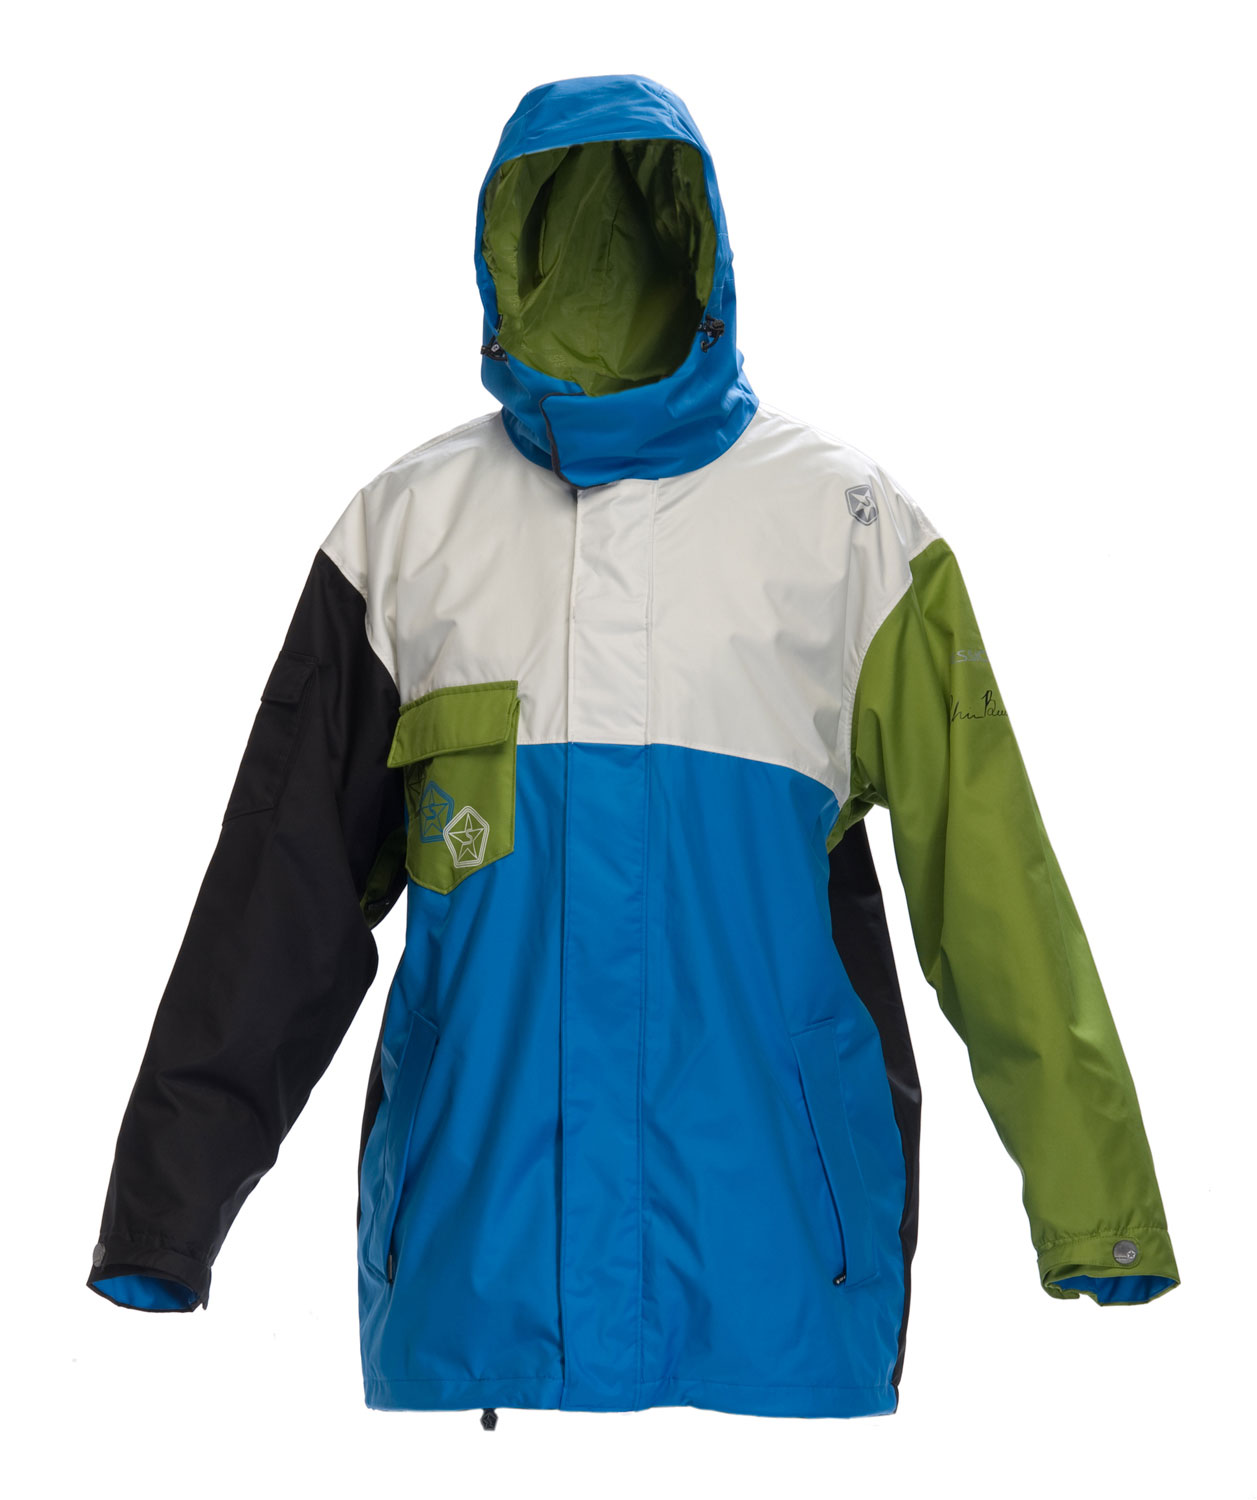 "Ski Casual yet classic, the Sessions Benchetler Jacket offers the right combination of comfort and style. Rock this jacket out with style. Waterproof and insulated, this jacket is perfect for outdoor activities. With its satin inner lining, stay soft and cozy while keeping warm. Stay extra dry and warm and be sure to feel comfortable all day long, all season long. Treat yourself to the Sessions Benchetler Jacket, the ultimate outdoor jacket.Key Features of the Sessions Benchetler Jacket: 15,000mm Waterproof 10,000g Breathability Warmth Rating: 4 Fit: Team +2"" Insulation/Lining: Shell Satin Lined Jacket Fixed Hood Mesh Lined Pit Zips Snap Away Suspension Storm Skirt Butter Face Pow-Zip Feature Critically Taped Seams Interior RECCO - $124.95"